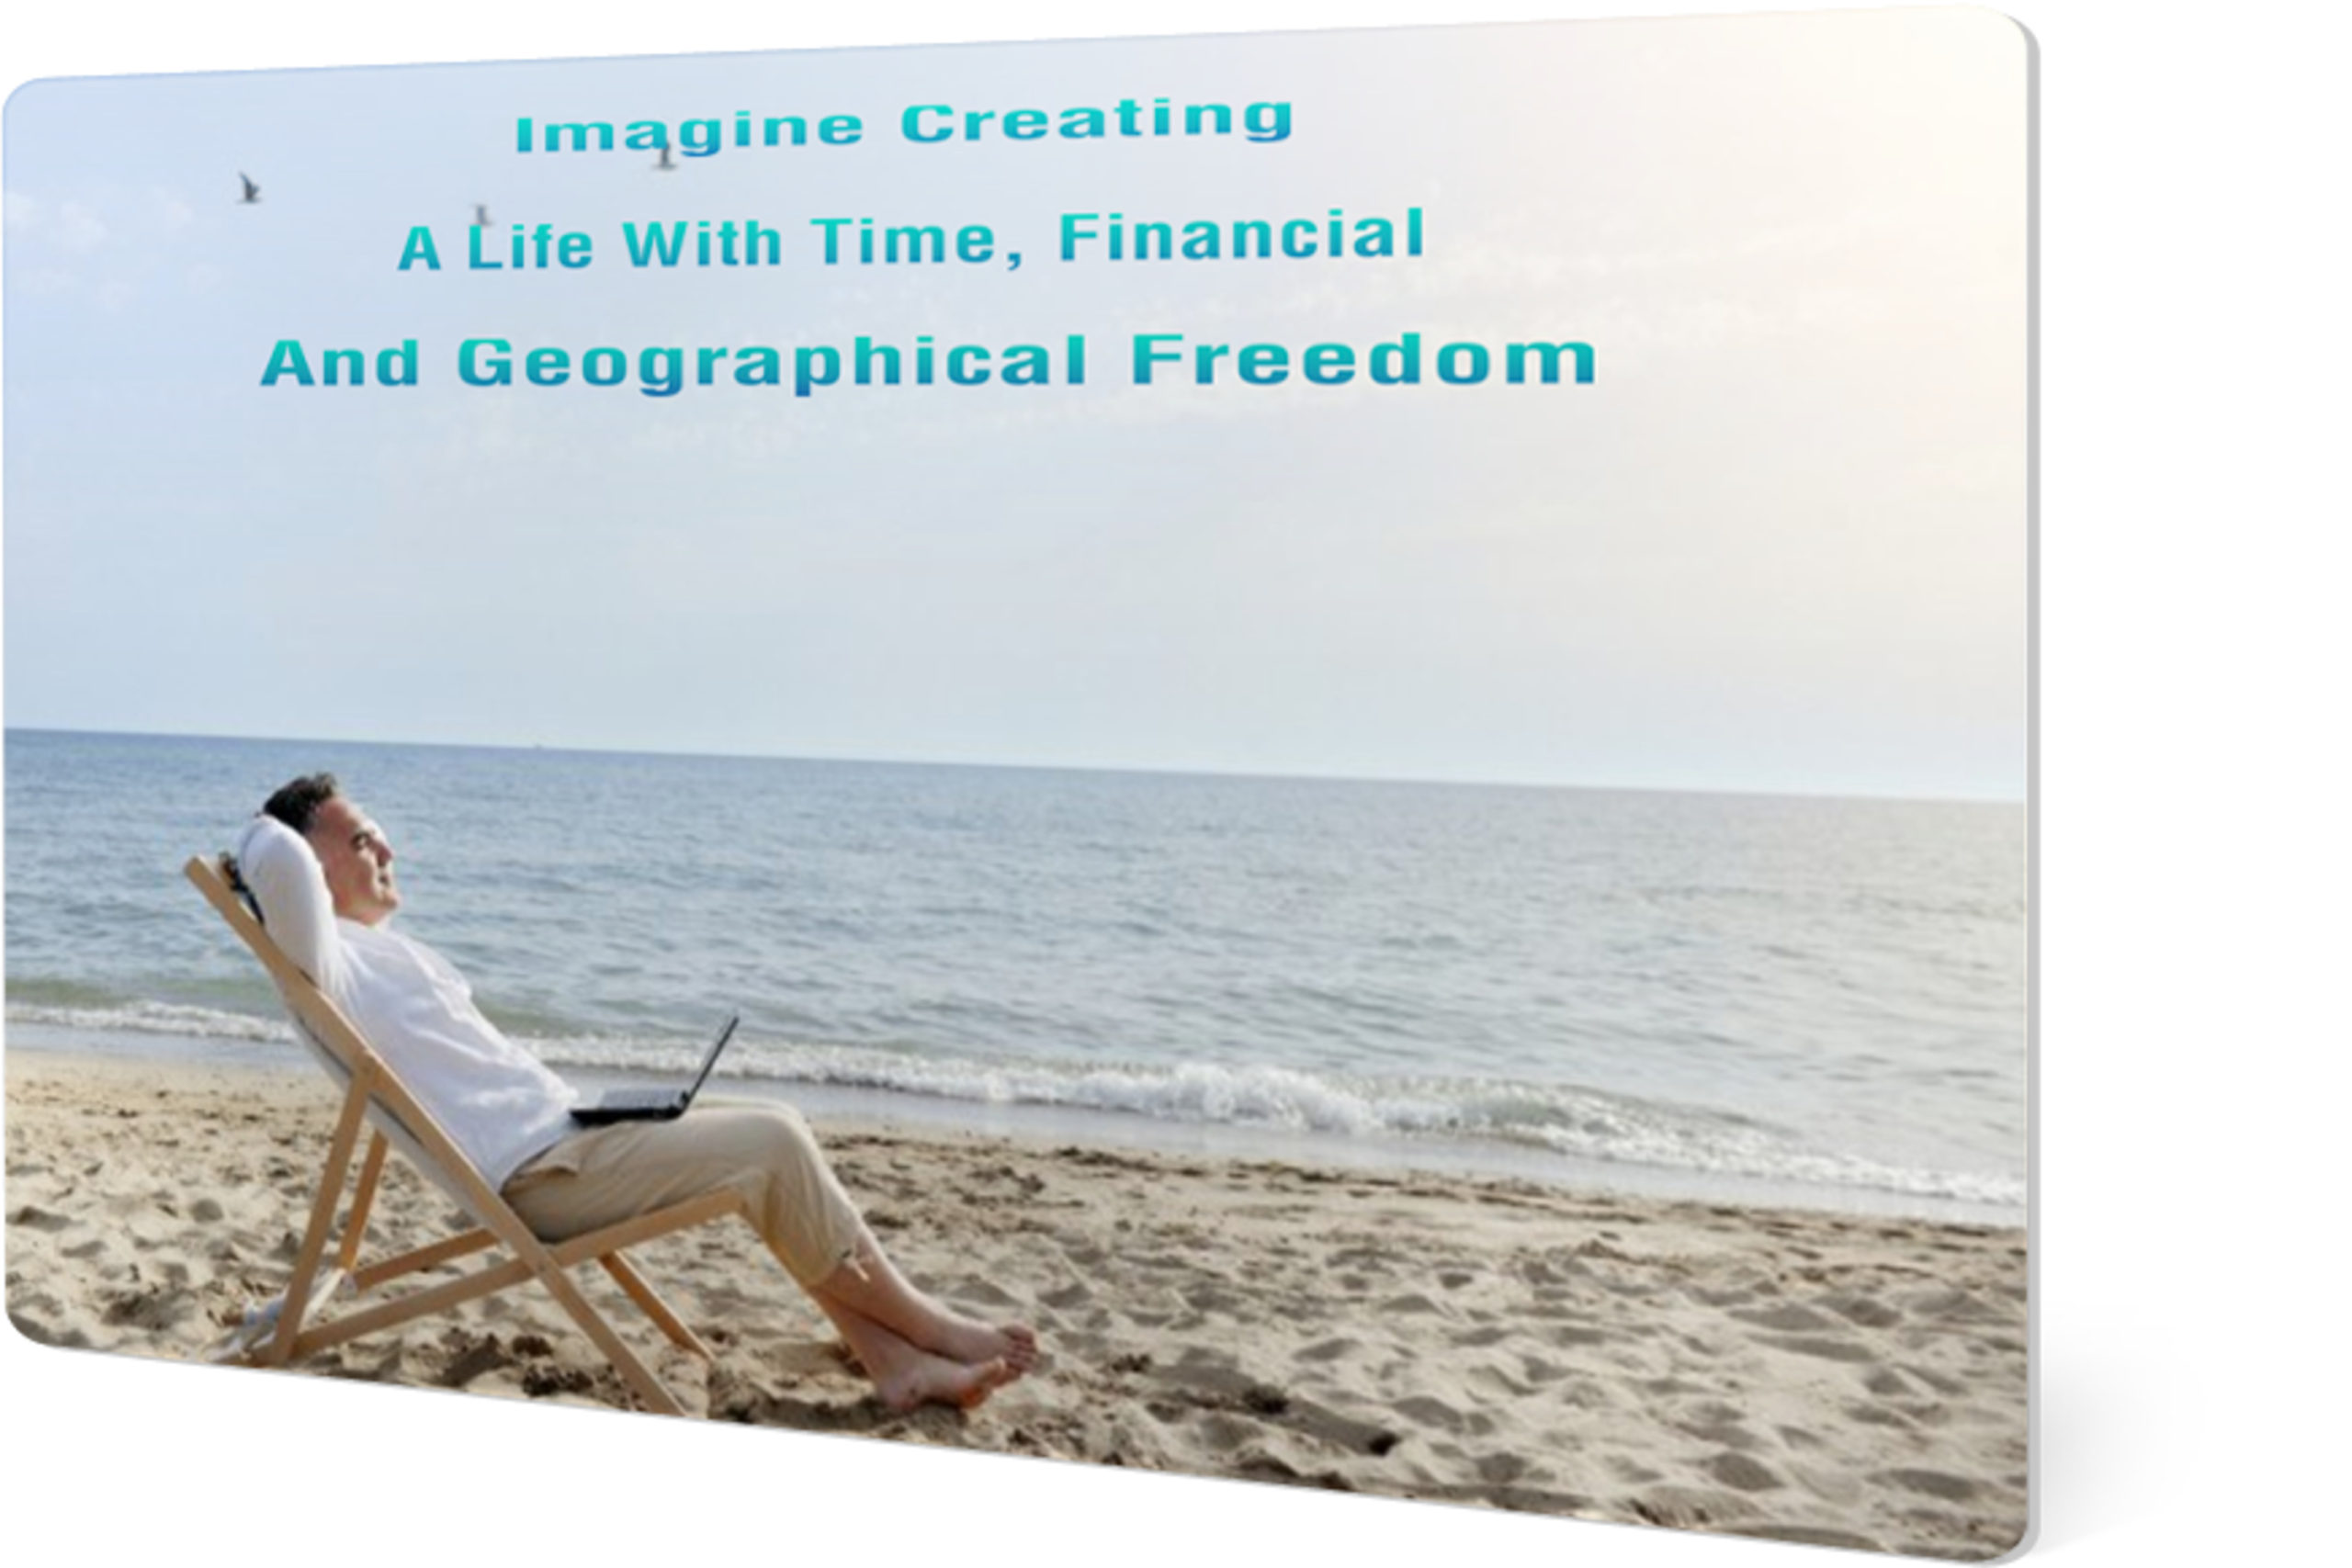 Time Financial and Geographical Freedom